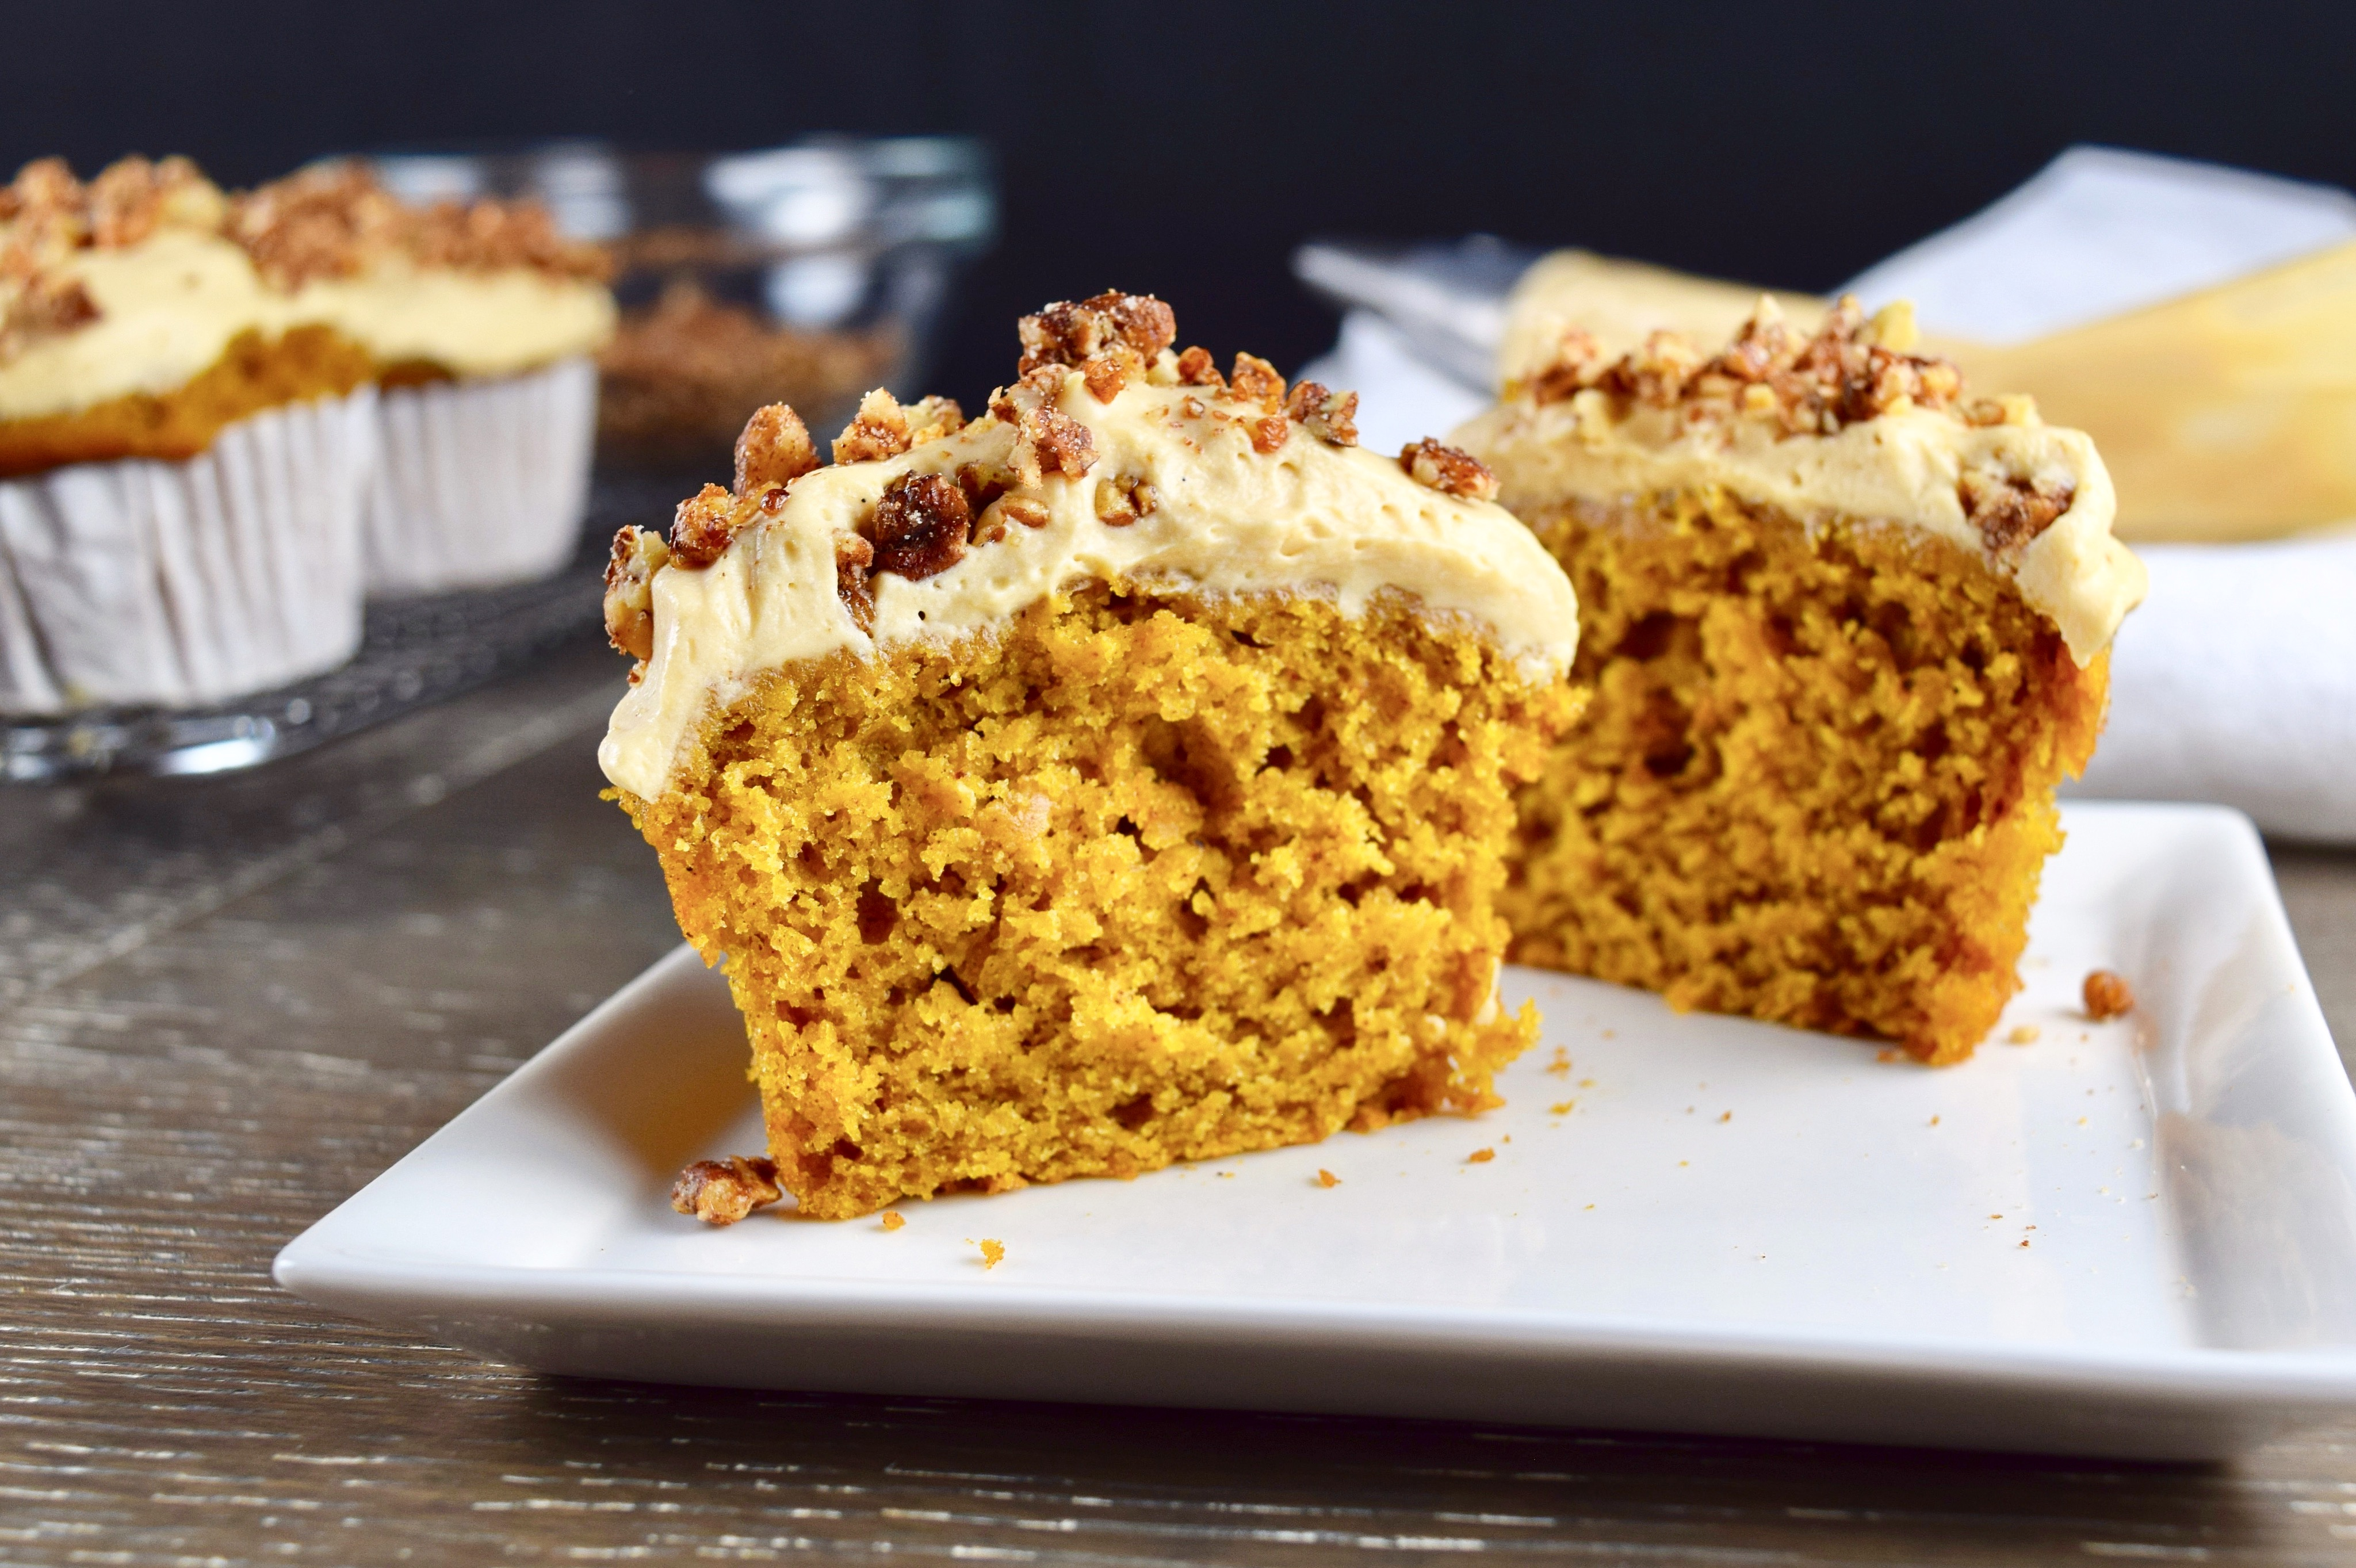 Pumpkin Spice Cupcakes with Caramel Cream Cheese Frosting Good